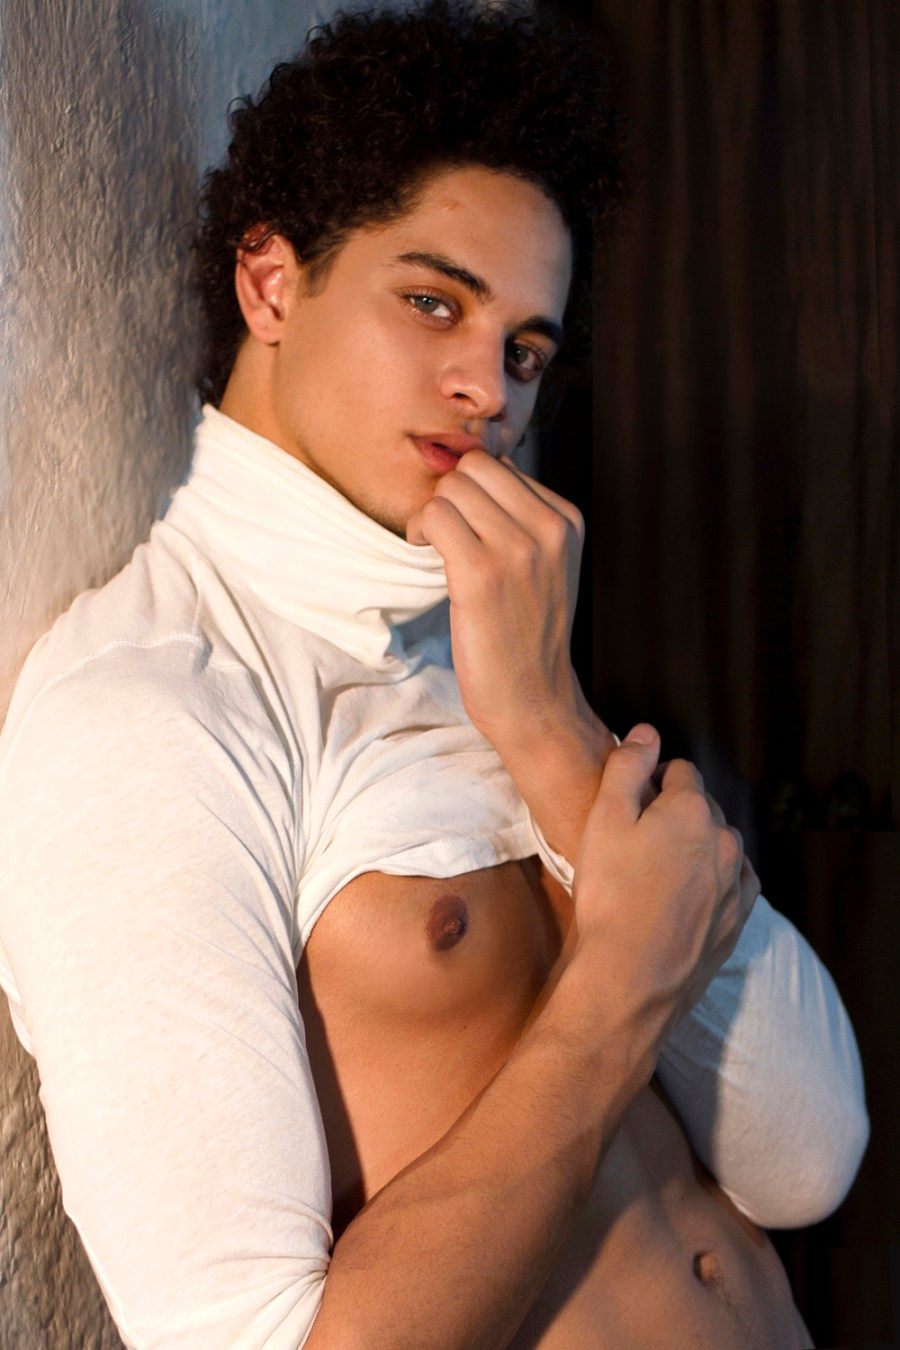 """To B or Not To Be, That Is The Question this famous Opening phrase of a soliloquy spoken by Prince Hamlet in the so-called """"nunnery scene"""" of William Shakespeare's play Hamlet inspired by fashion photographer Joseph Bleu collaborating with fitness athlete Jon Reneau."""